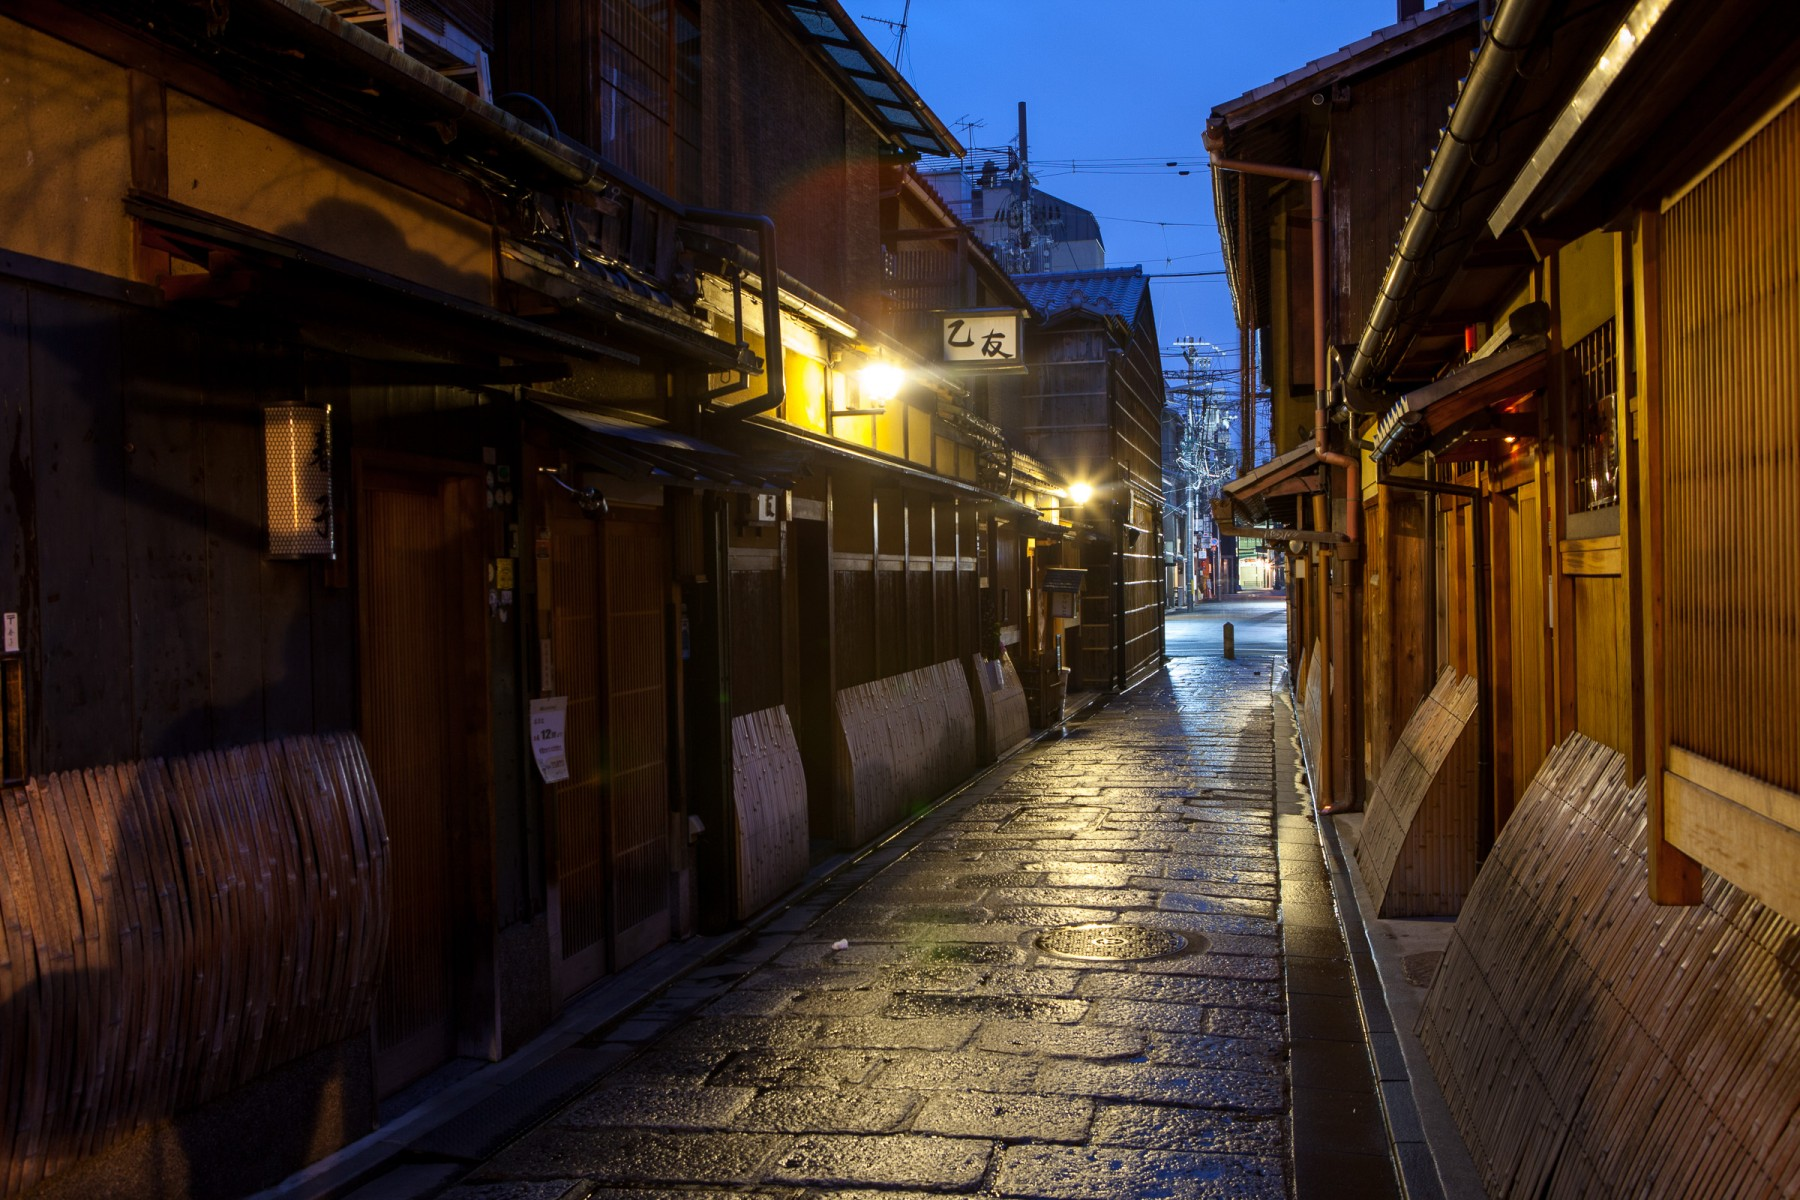 Pontocho Alley, which runs parallel to the Kamo-gawa River is one of the few well-preserved streets of old Kyoto. It's lined with traditional shops and restaurants.